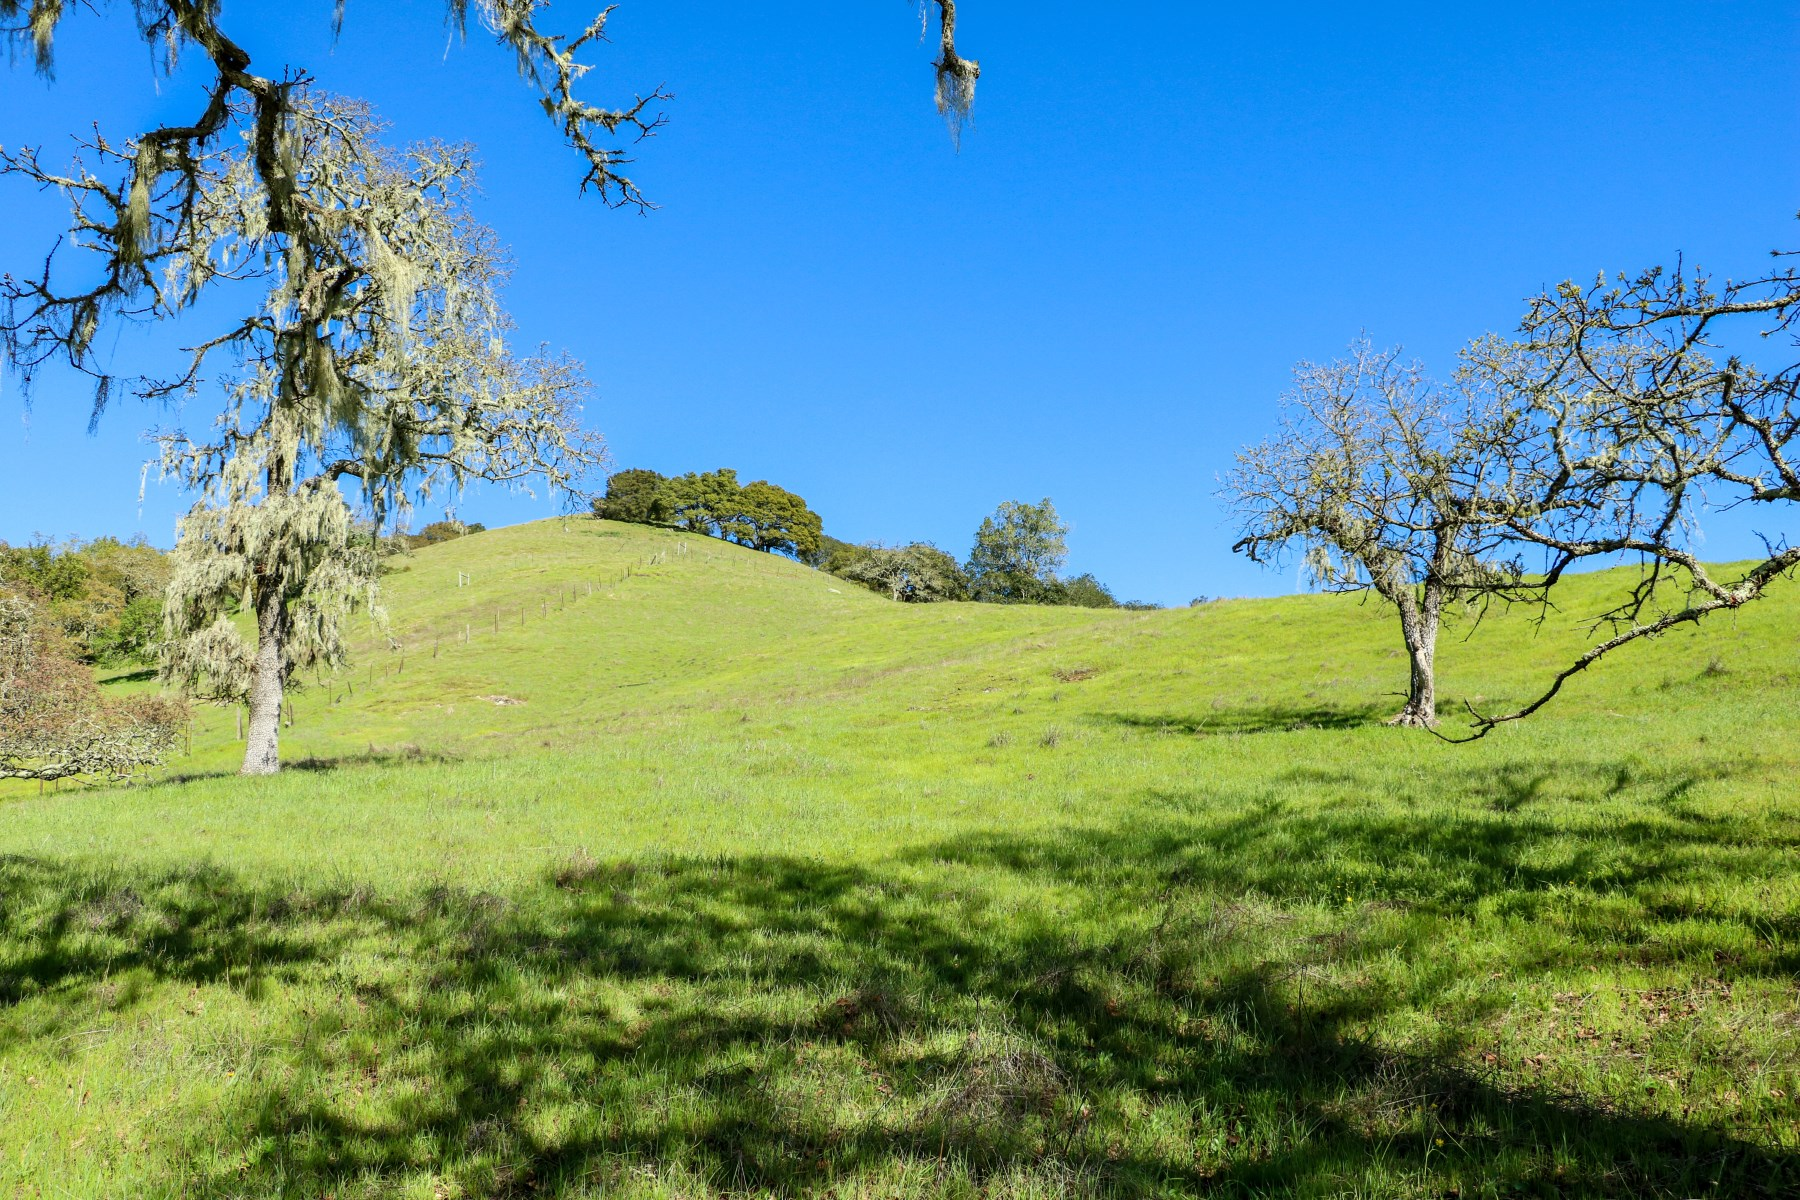 Land for Sale at Beauty, Location, Views 5381 Bennett Valley Rd Santa Rosa, California, 95404 United States